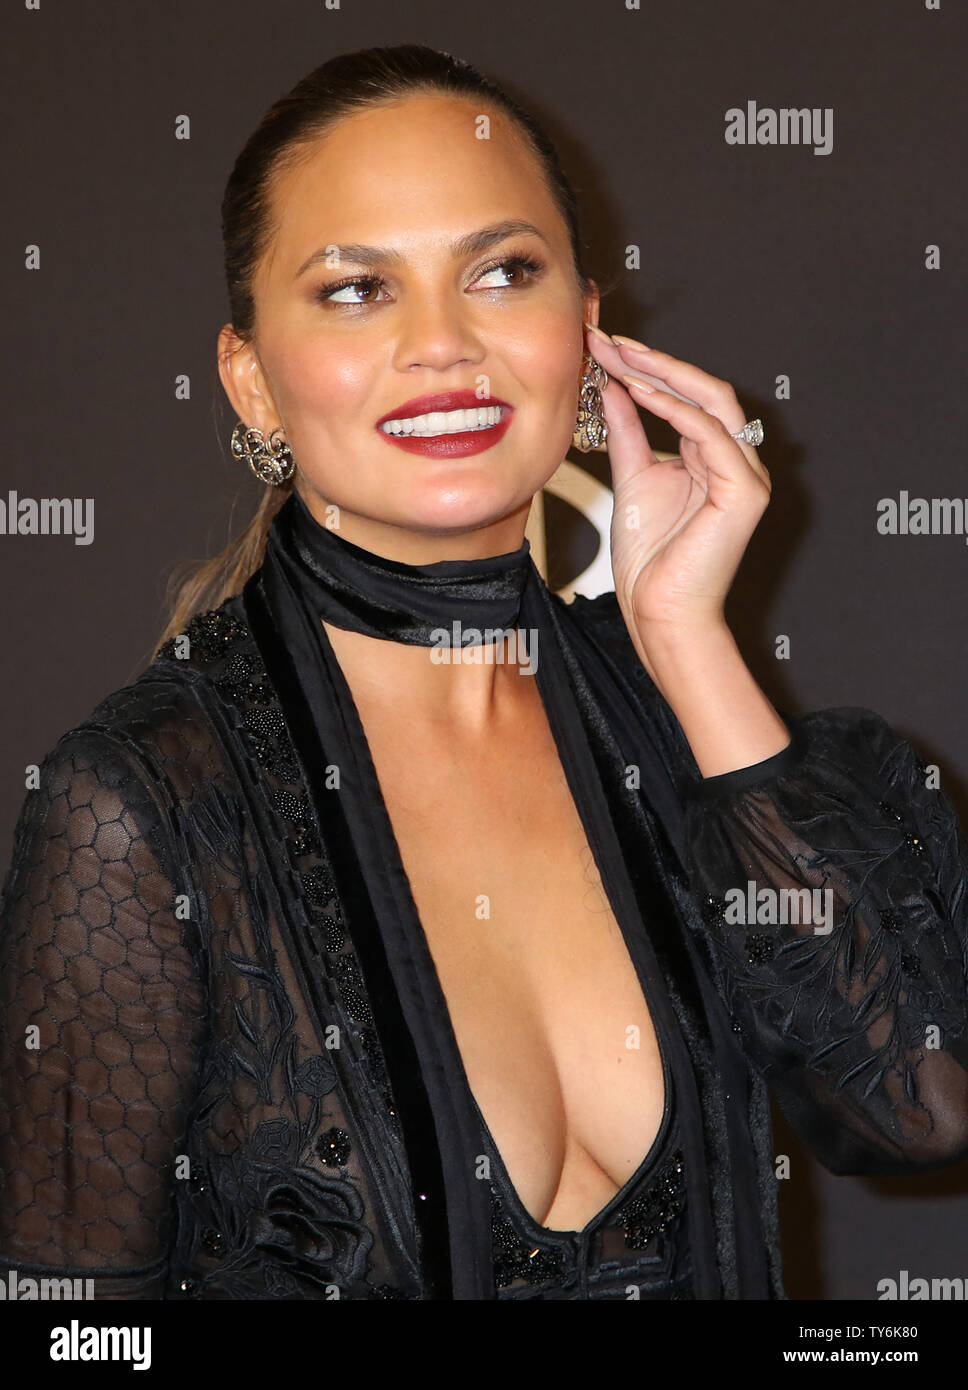 Chrissy Teigen attends the 18th annual InStyle and Warner Bros. Golden Globe after-party at the Beverly Hilton Hotel in Beverly Hills, California on January 8, 2017.  Photo by David Silpa/UPI - Stock Image